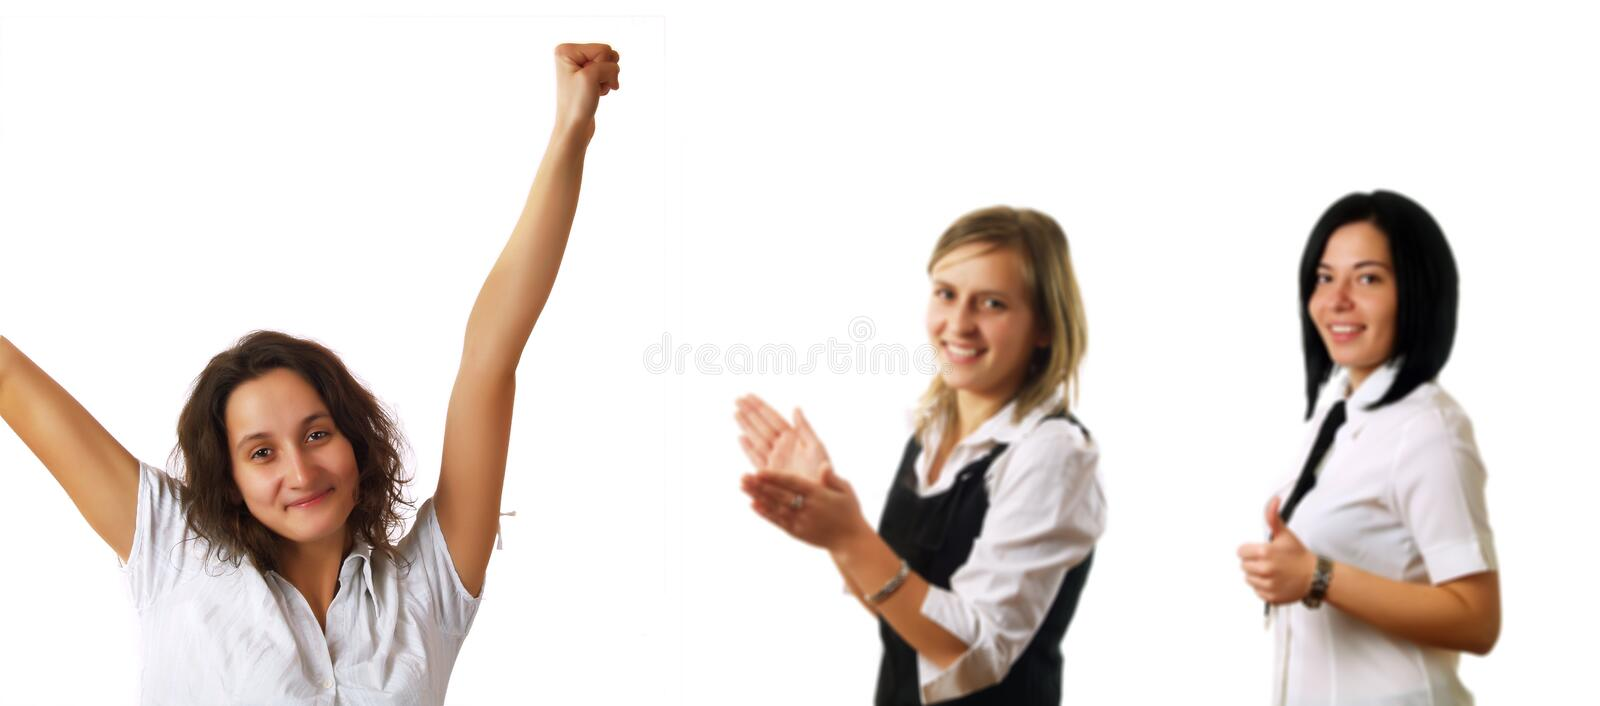 Success And Happiness At Work Stock Photos